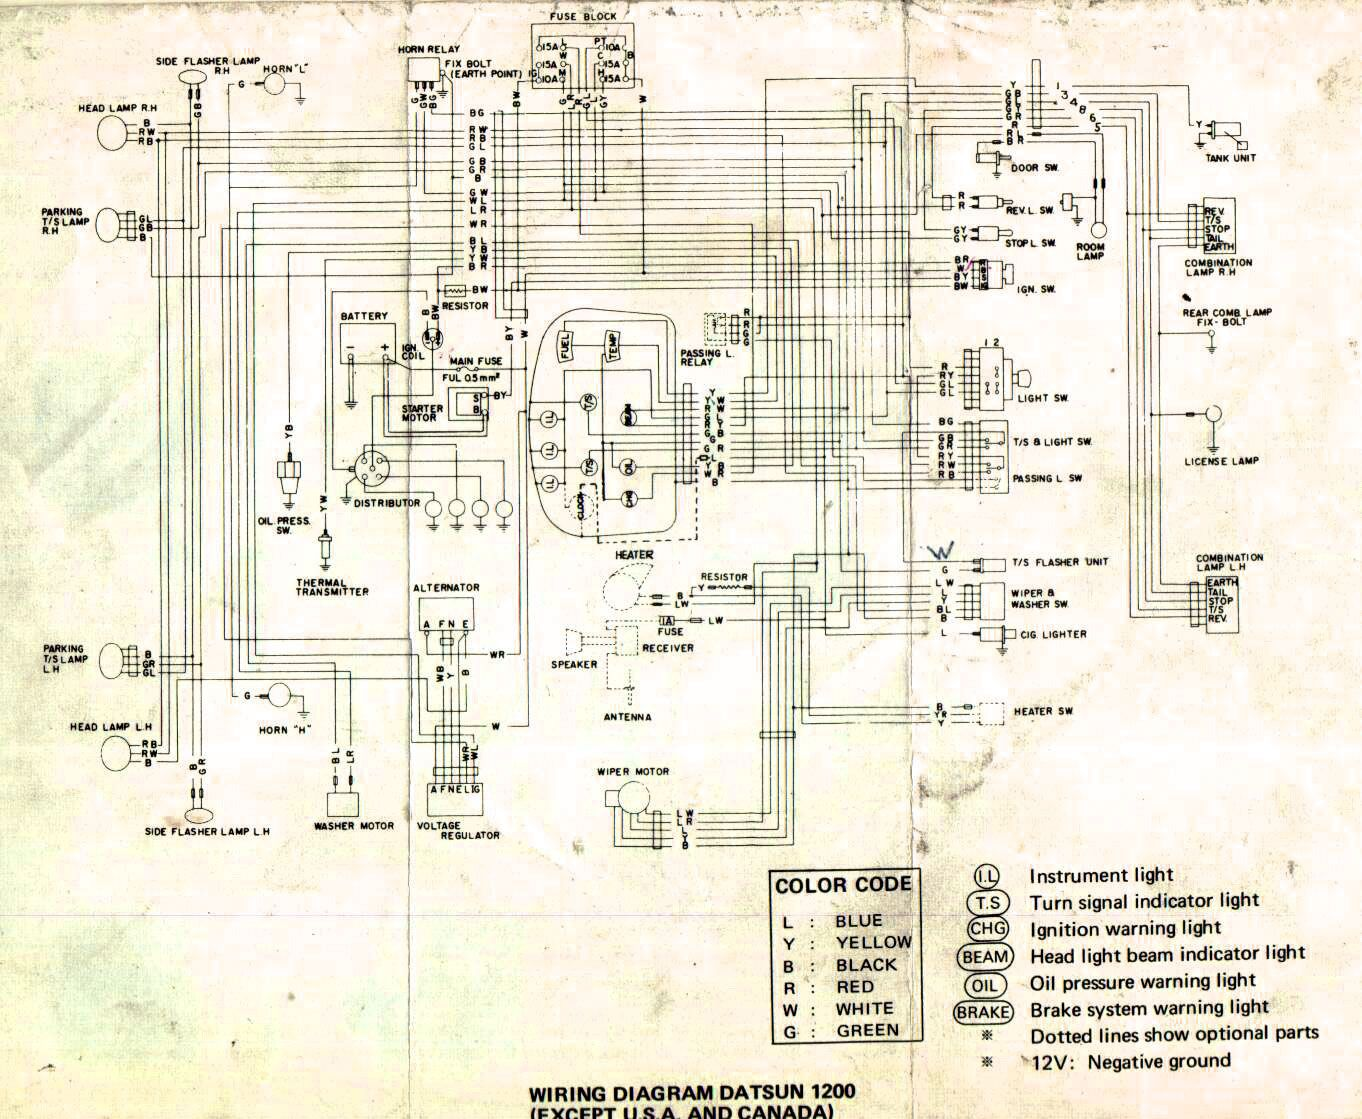 medium resolution of wiring diagram for nissan 1400 bakkie 8 nissan nissan diagram nissan 1400 wiring diagram free download